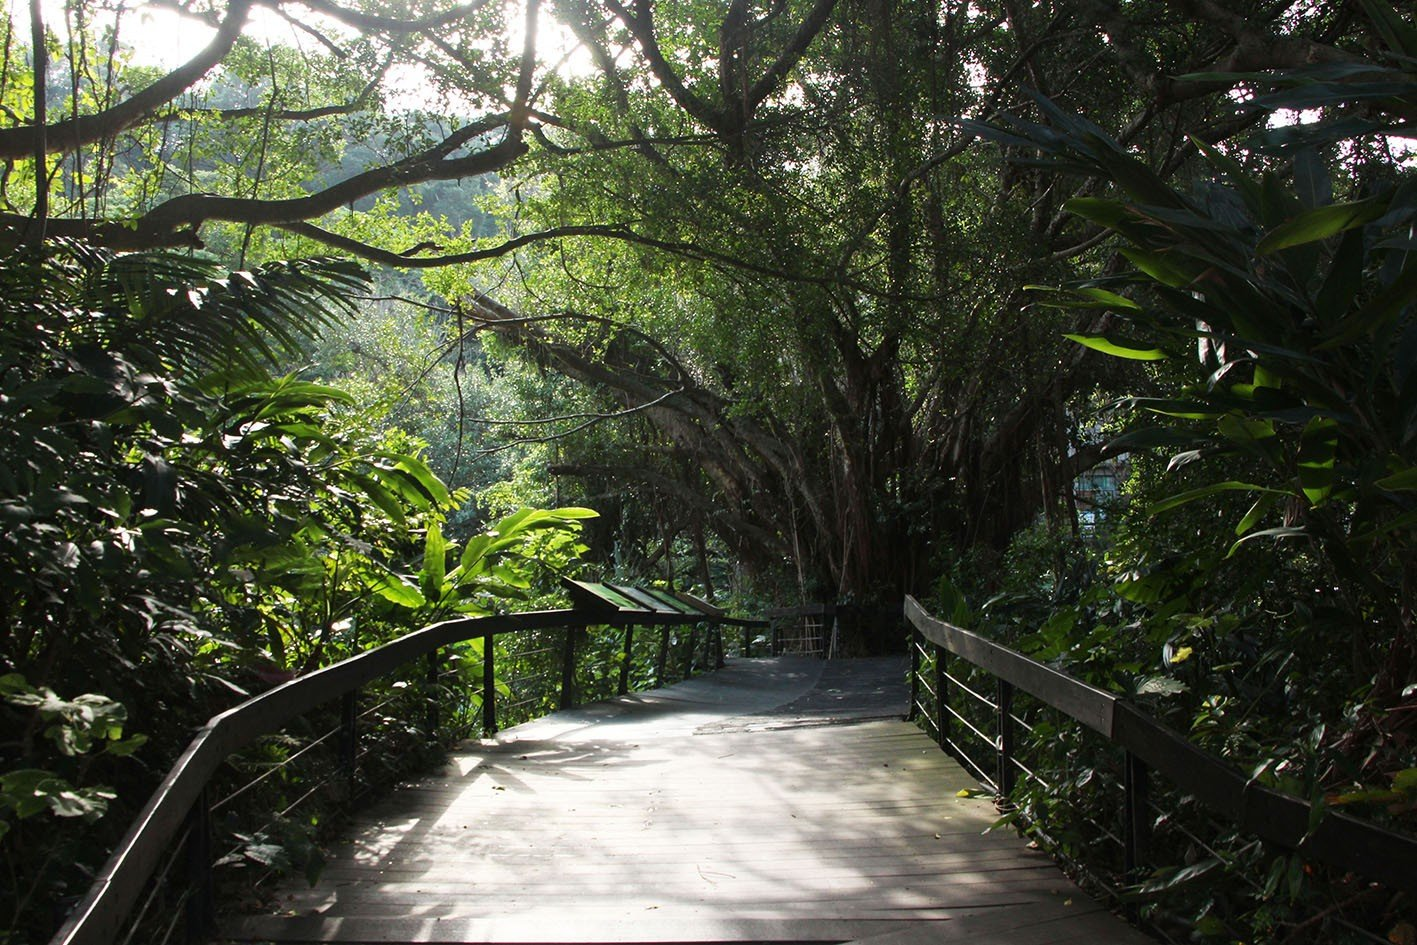 Zhishan Cultural and Ecological Garden